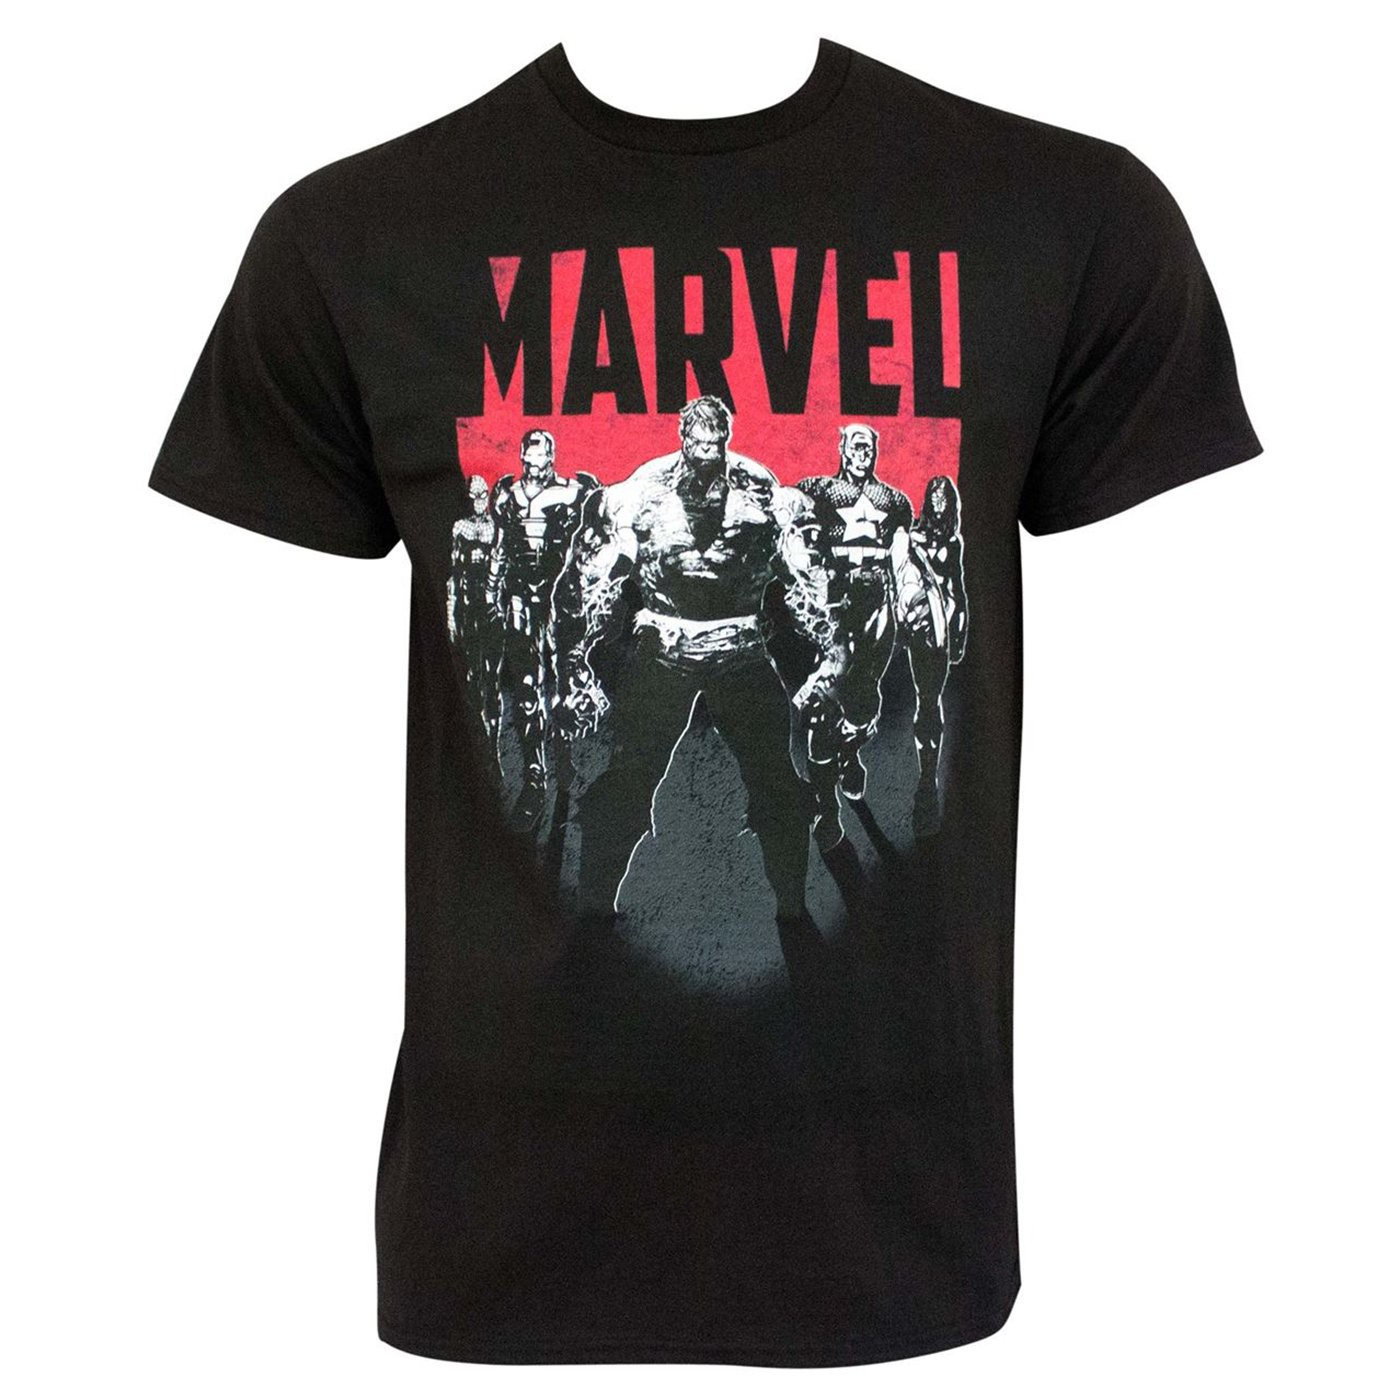 Marvel Avengers Men's Black T-Shirt